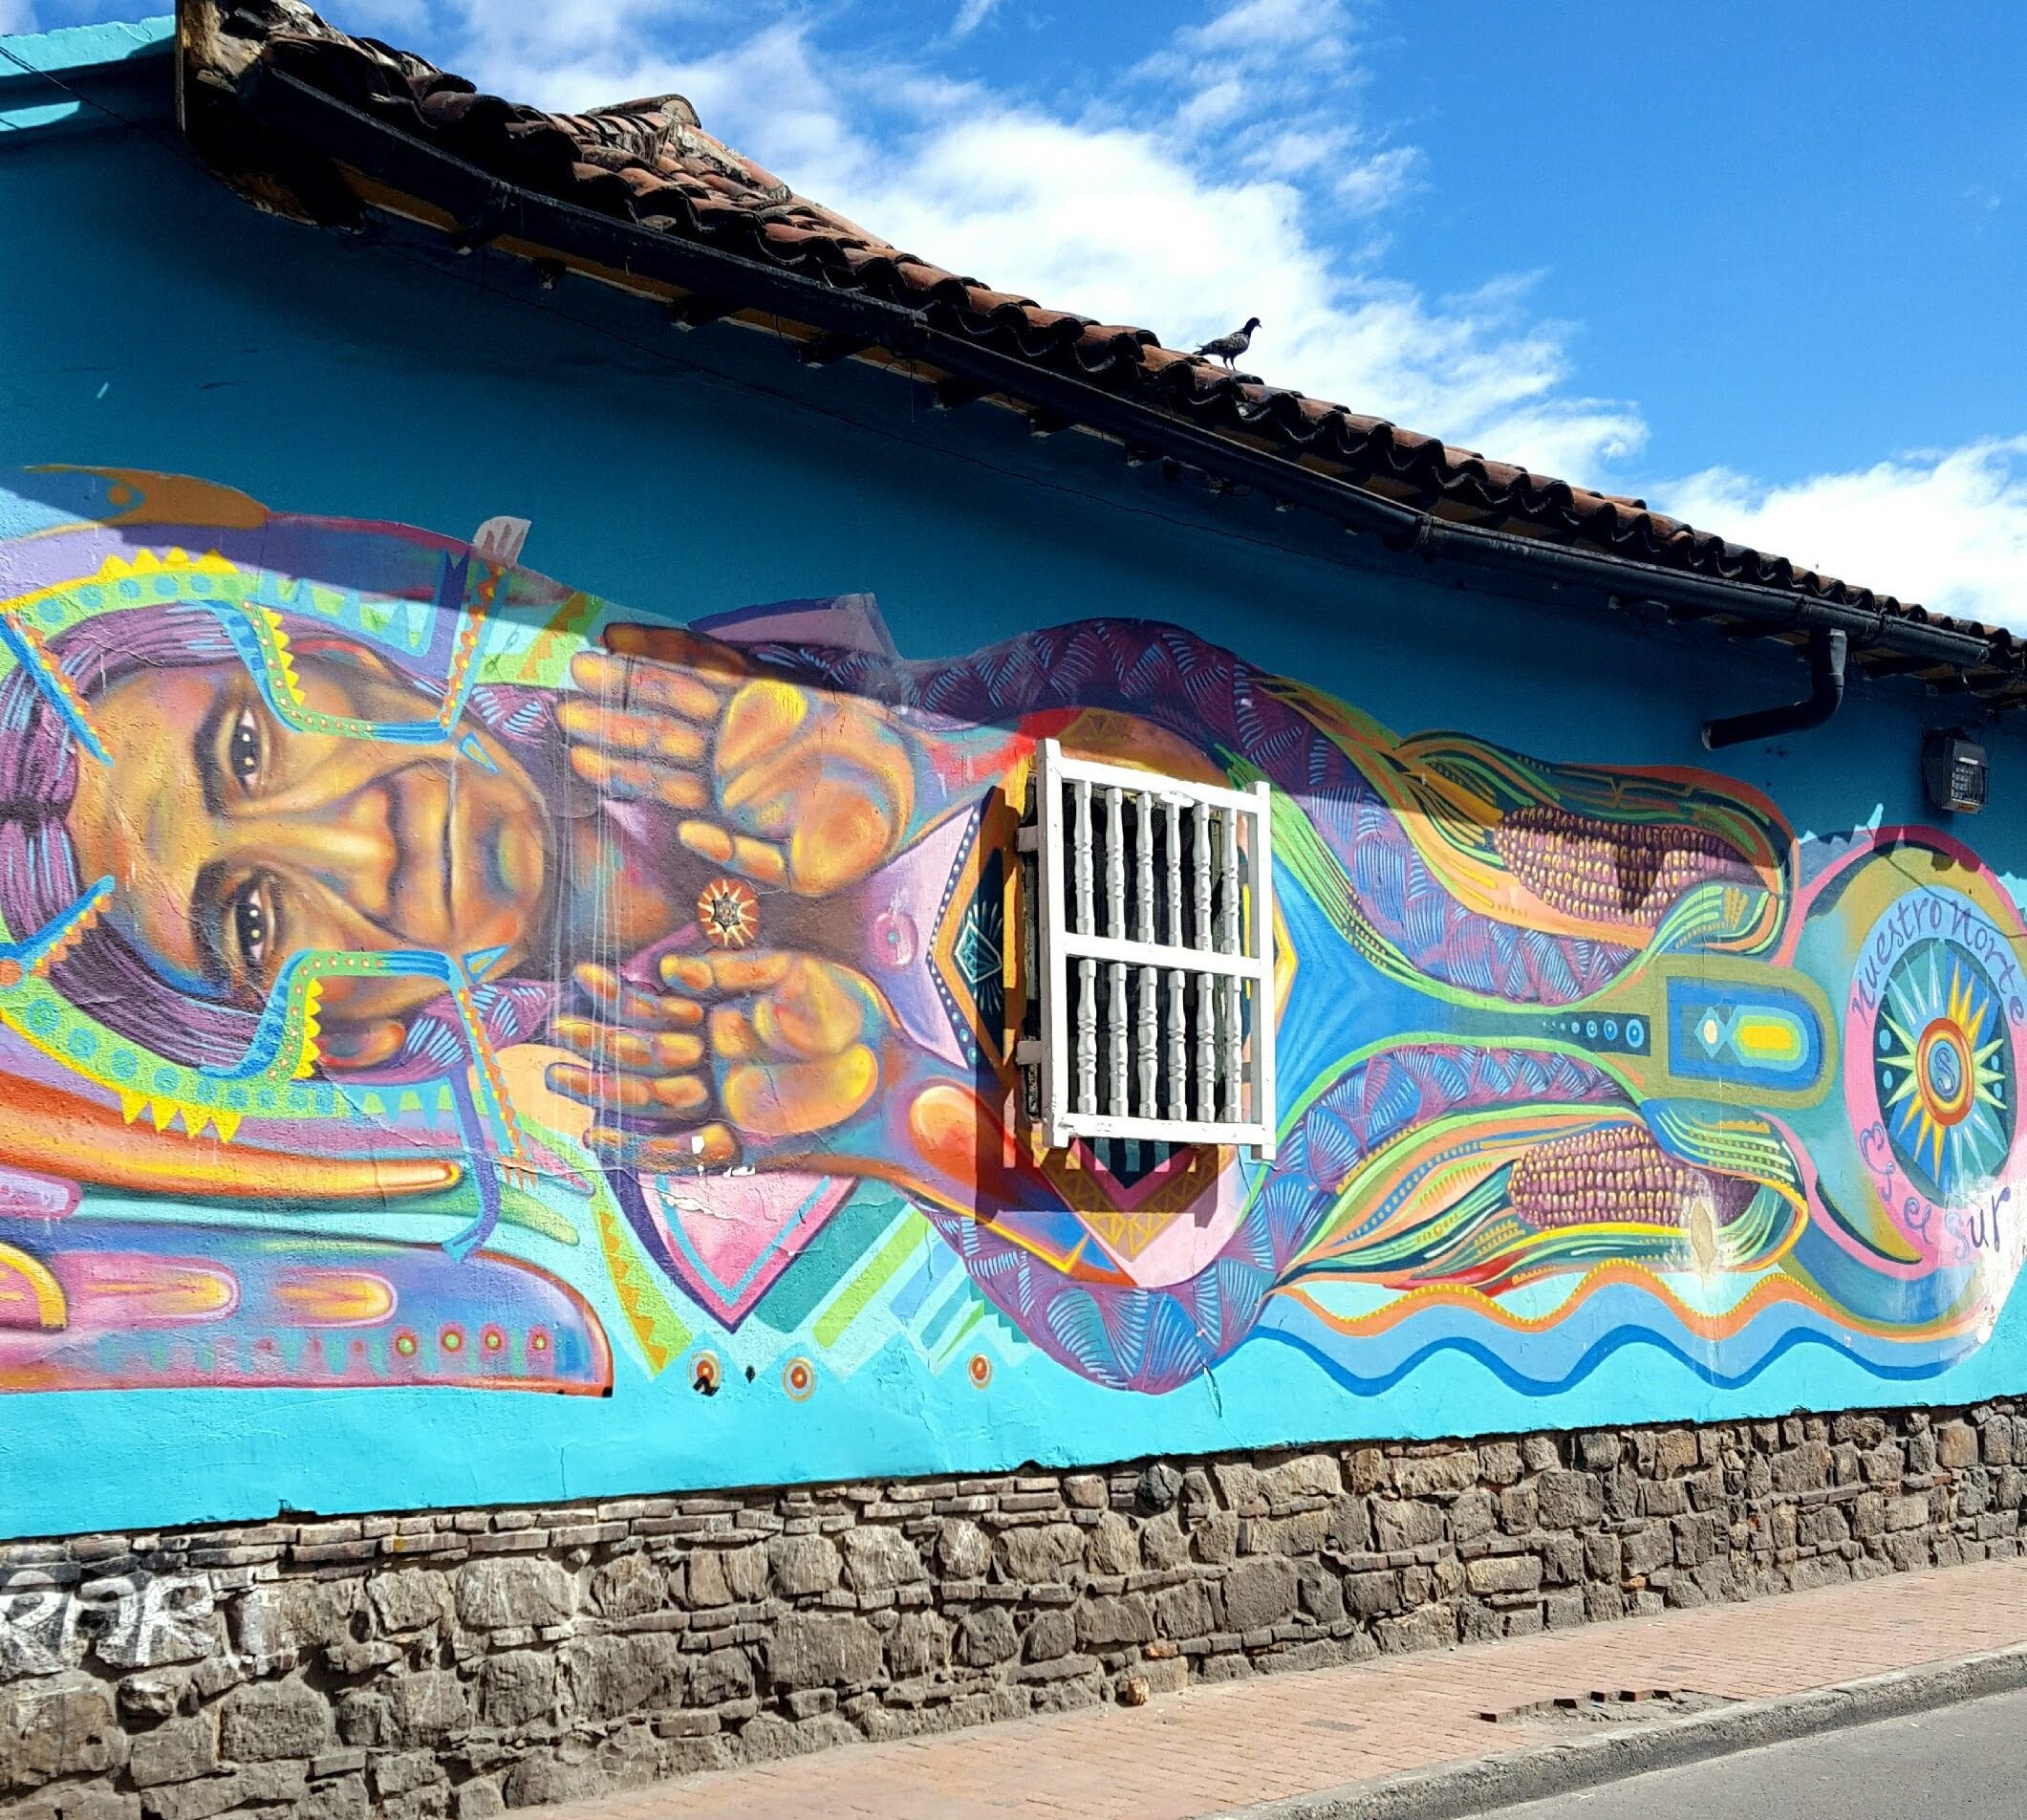 Who would have thought that Bogotá is such a street art paradise? Find more info and pics here: